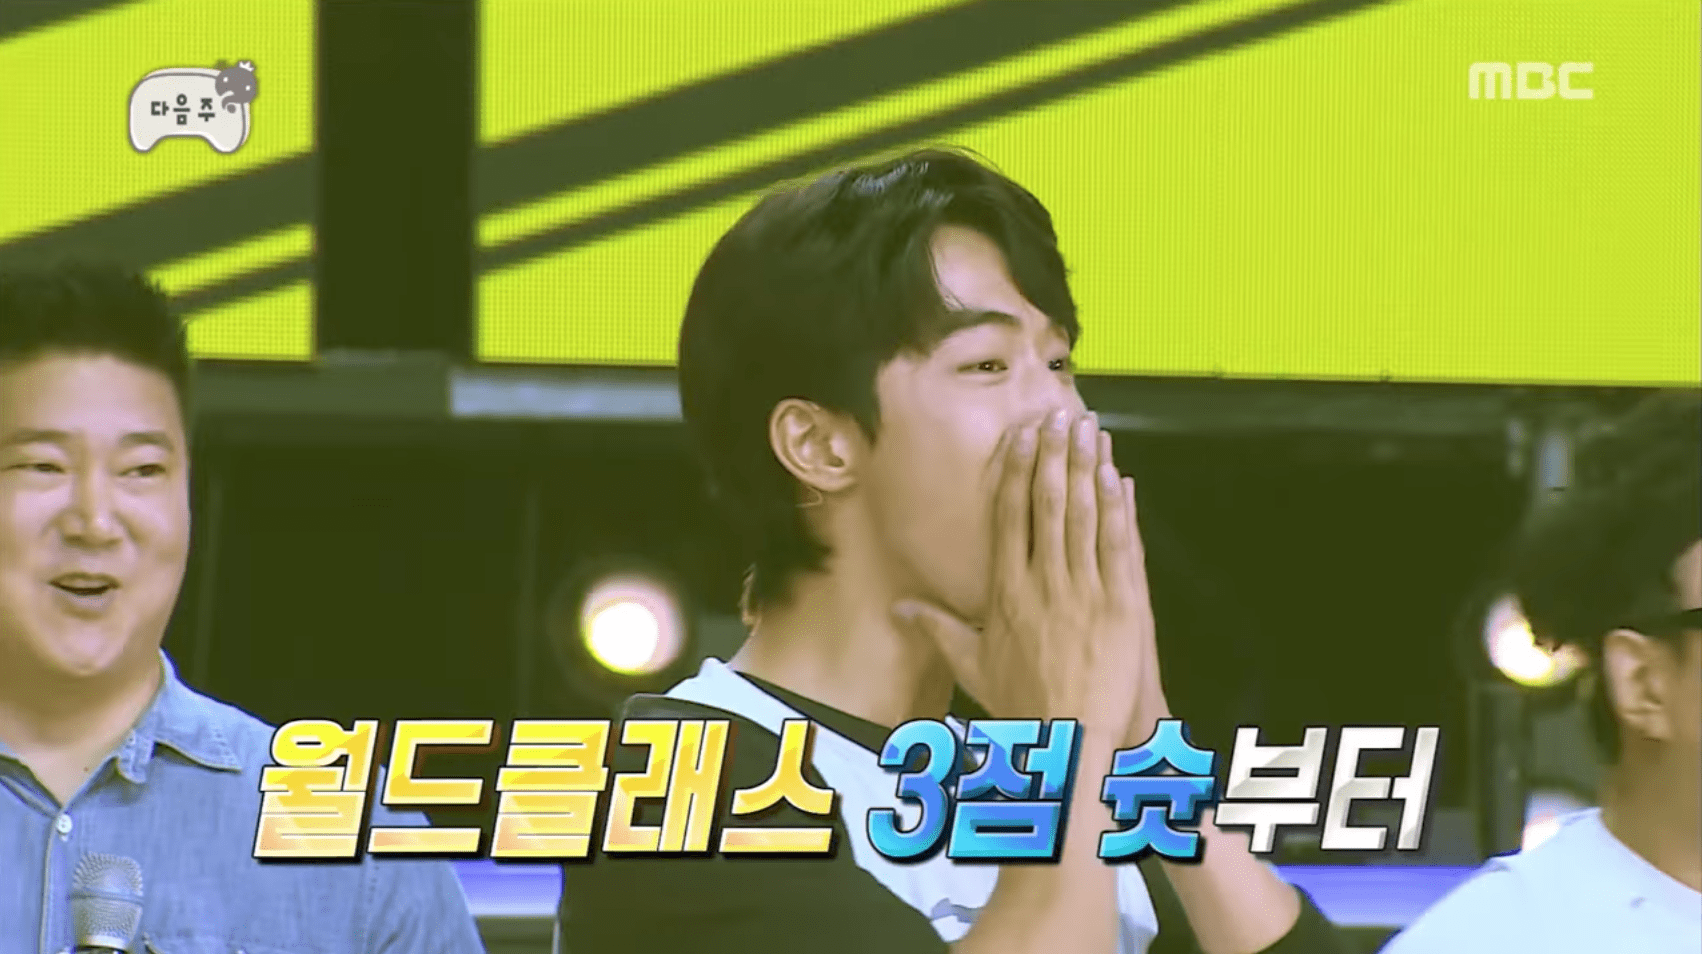 Watch: Infinite Challenge Cast And Nam Joo Hyuk Fanboy Over NBA Star Stephen Curry In Preview